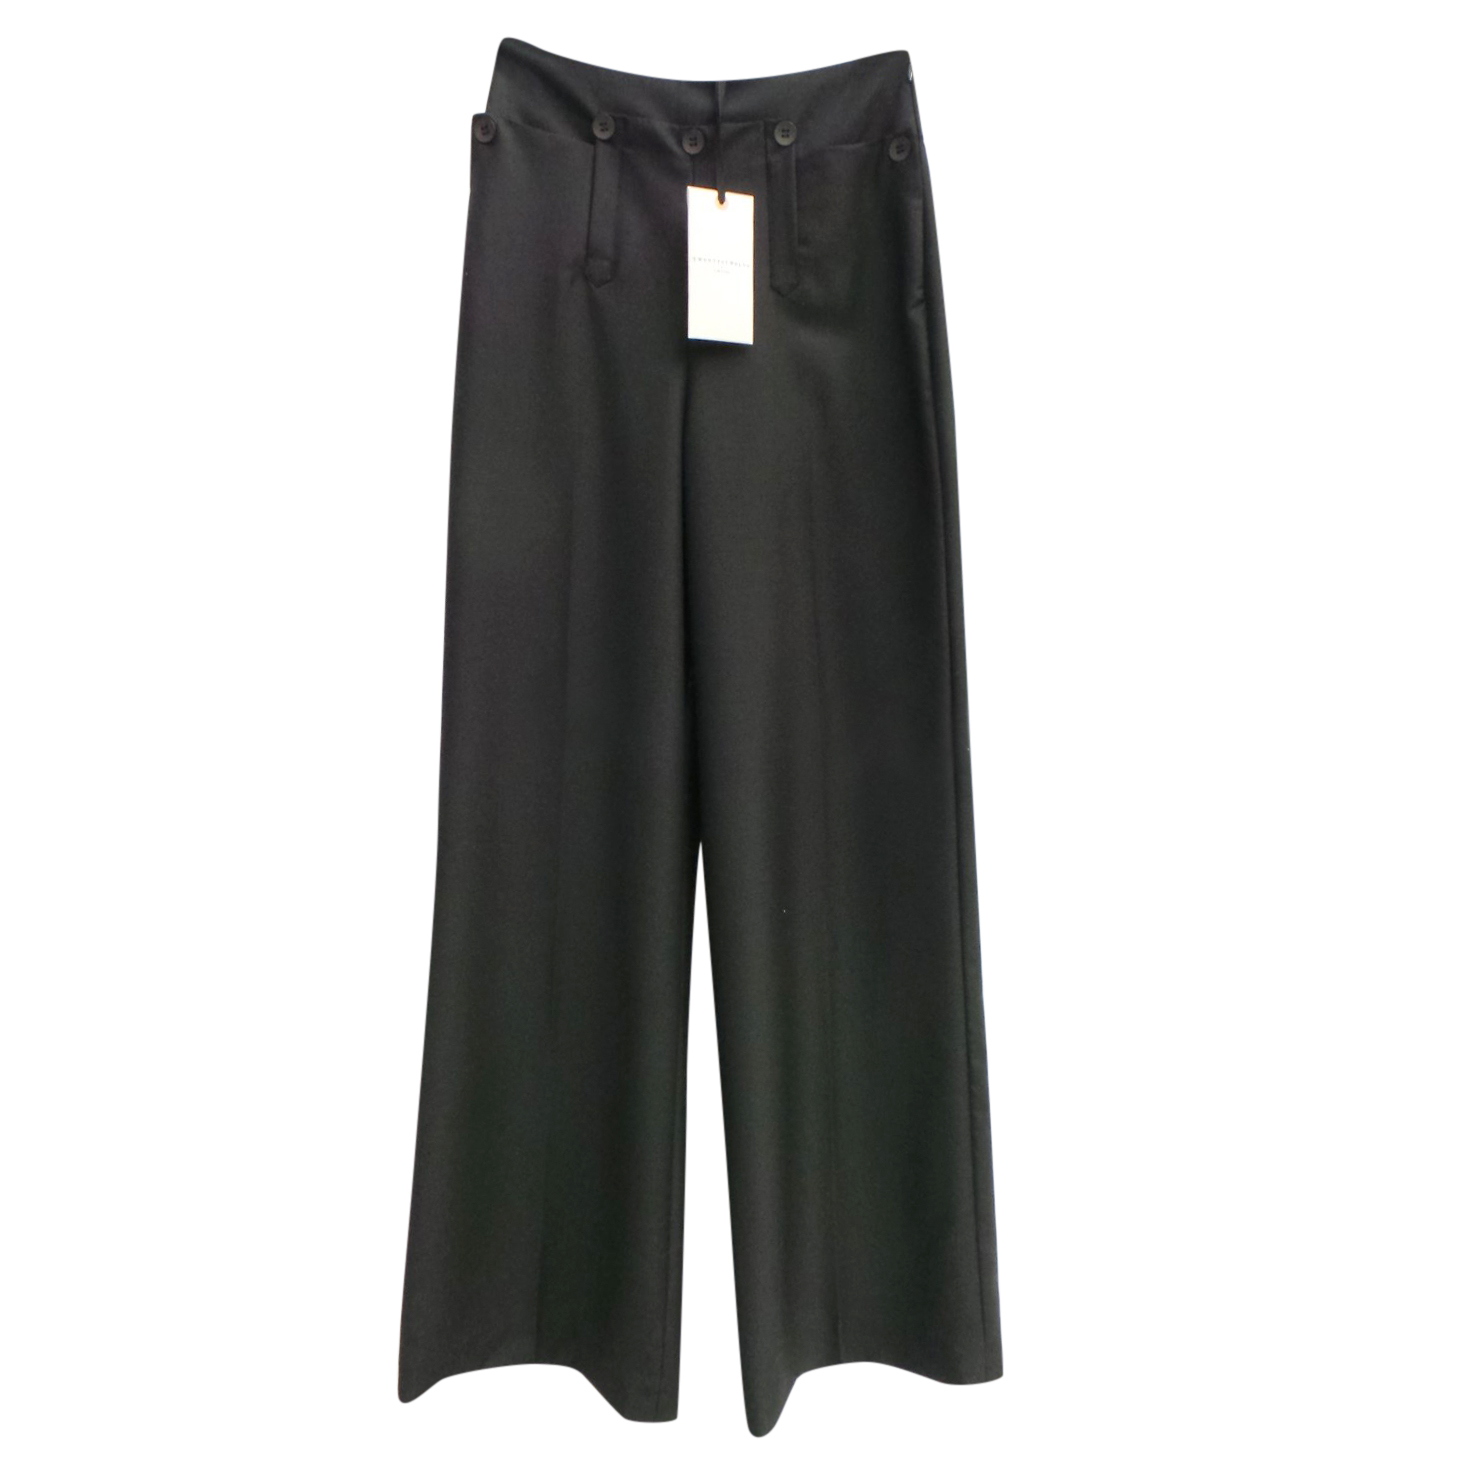 Twenty8Twelve tailored black trousers